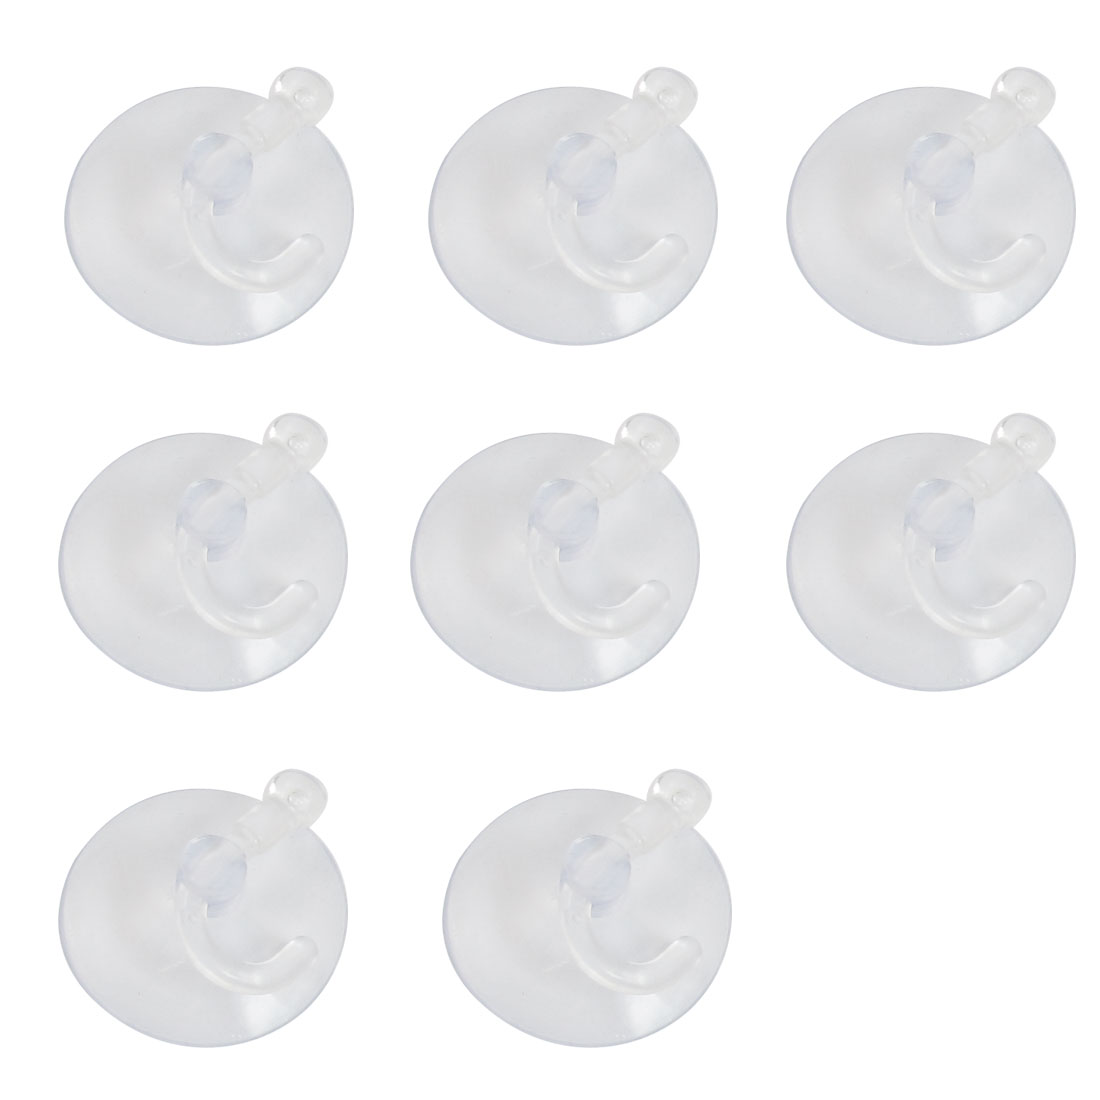 8 Pcs Bathroom Kitchen Clear Plastic Suction Cup Wall Hooks Hangers